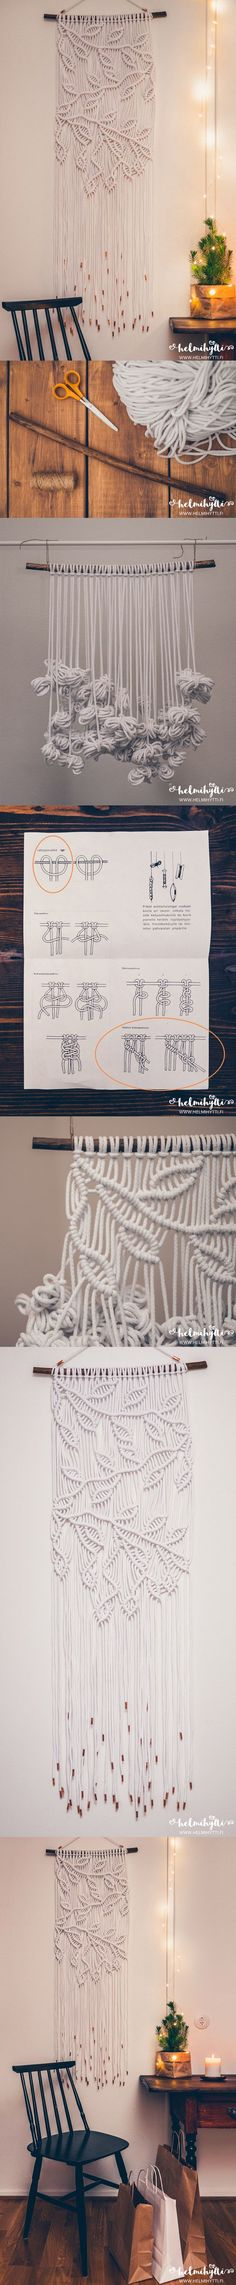 DIY macrame wall hanging with branch pattern tutorial. Only one knot type used! Copper tape at the ends of the yarn. This is smaller training version of my asymmetrical macrame kitchen curtain. Easy Home Decor, Handmade Home Decor, Macrame Curtain, Boho Wall Hanging, Diy Hanging, Macrame Design, Macrame Projects, Boho Diy, Bohemian Decor